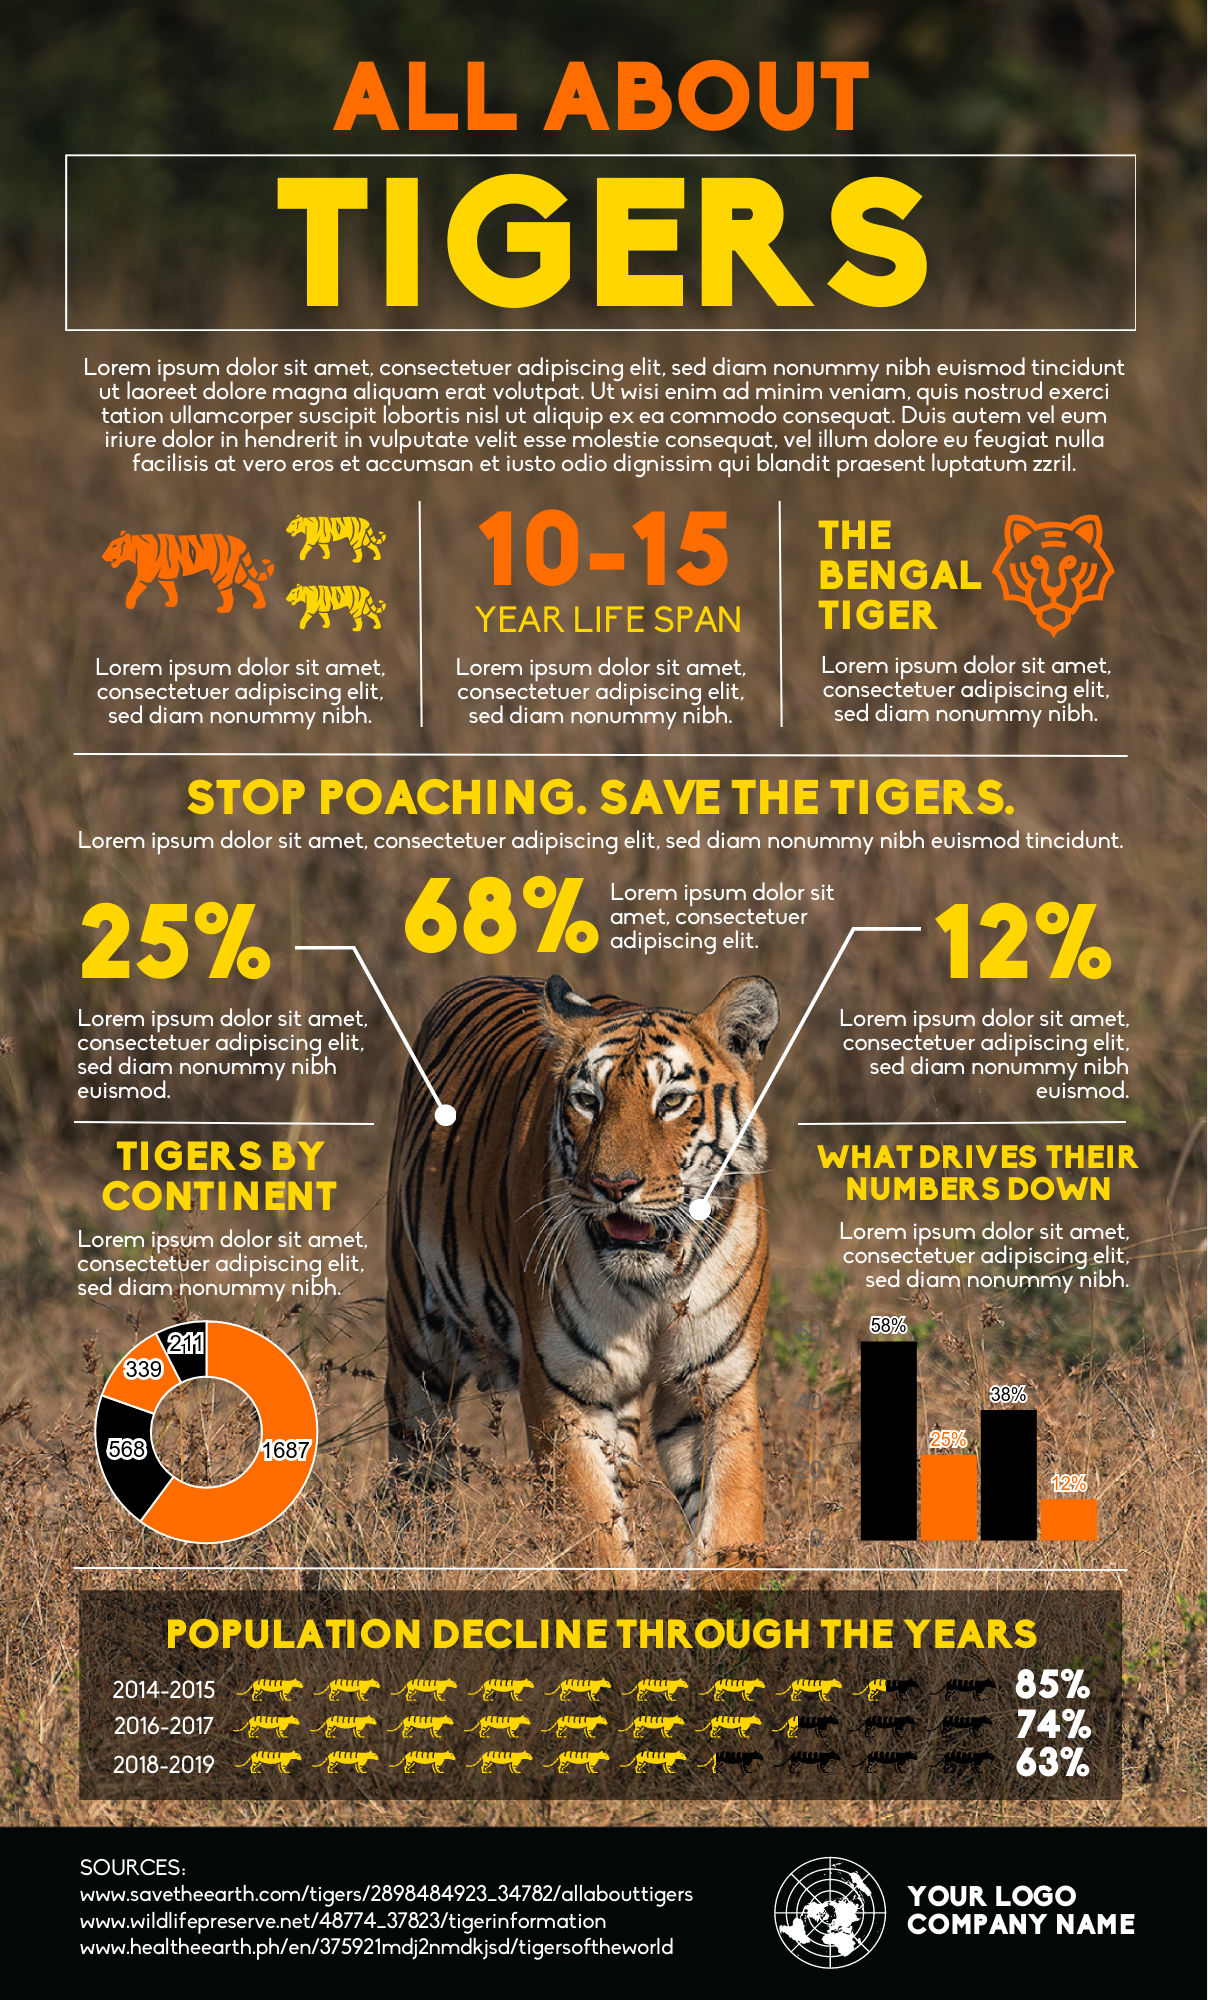 an infographic about tigers